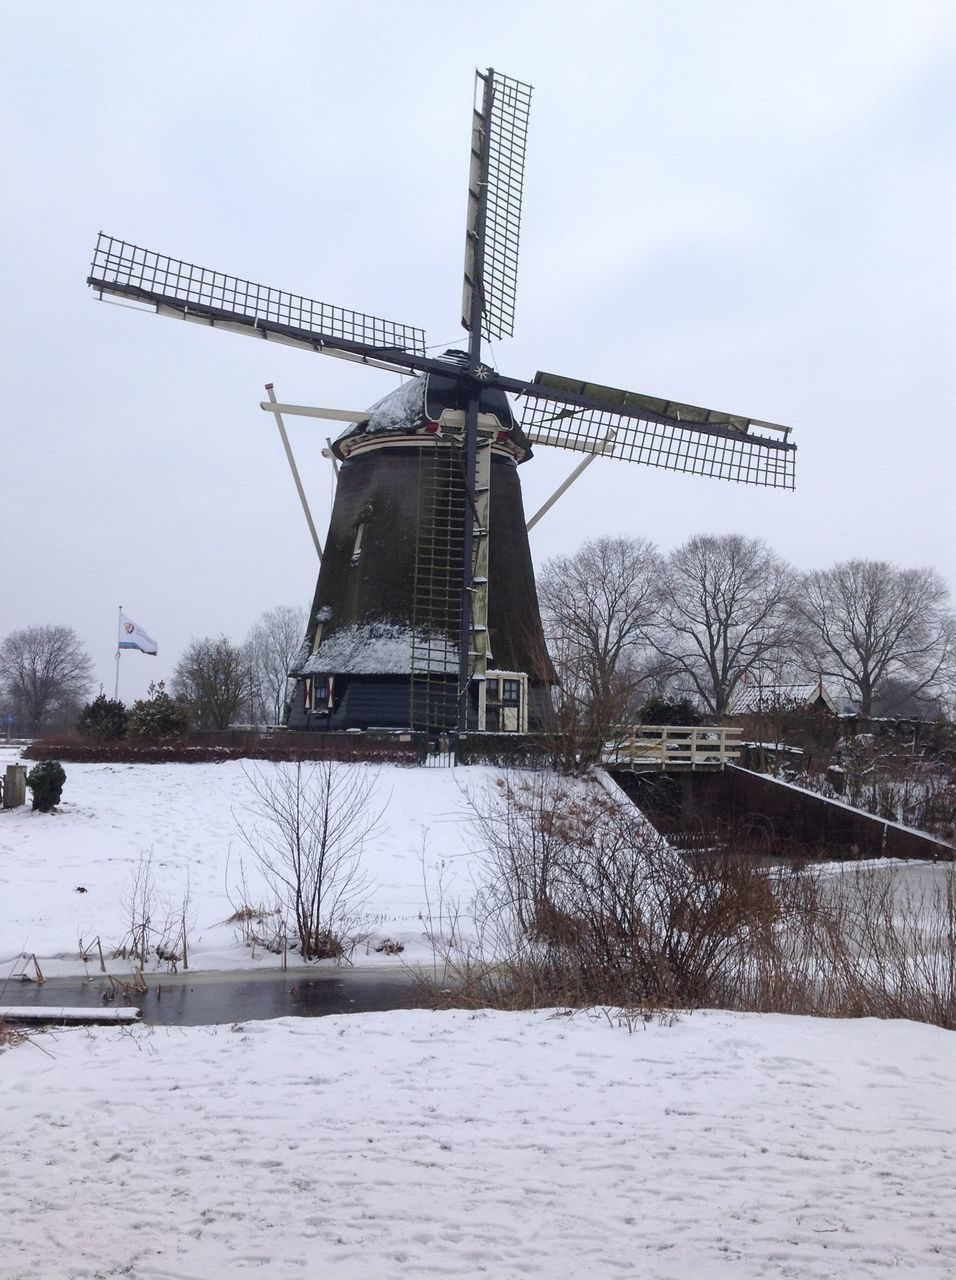 alternative energy, wind power, windmill, renewable energy, environmental conservation, wind turbine, fuel and power generation, traditional windmill, industrial windmill, cold temperature, weather, winter, snow, technology, nature, built structure, field, architecture, outdoors, day, no people, rural scene, bare tree, lake, sky, water, beauty in nature, tree